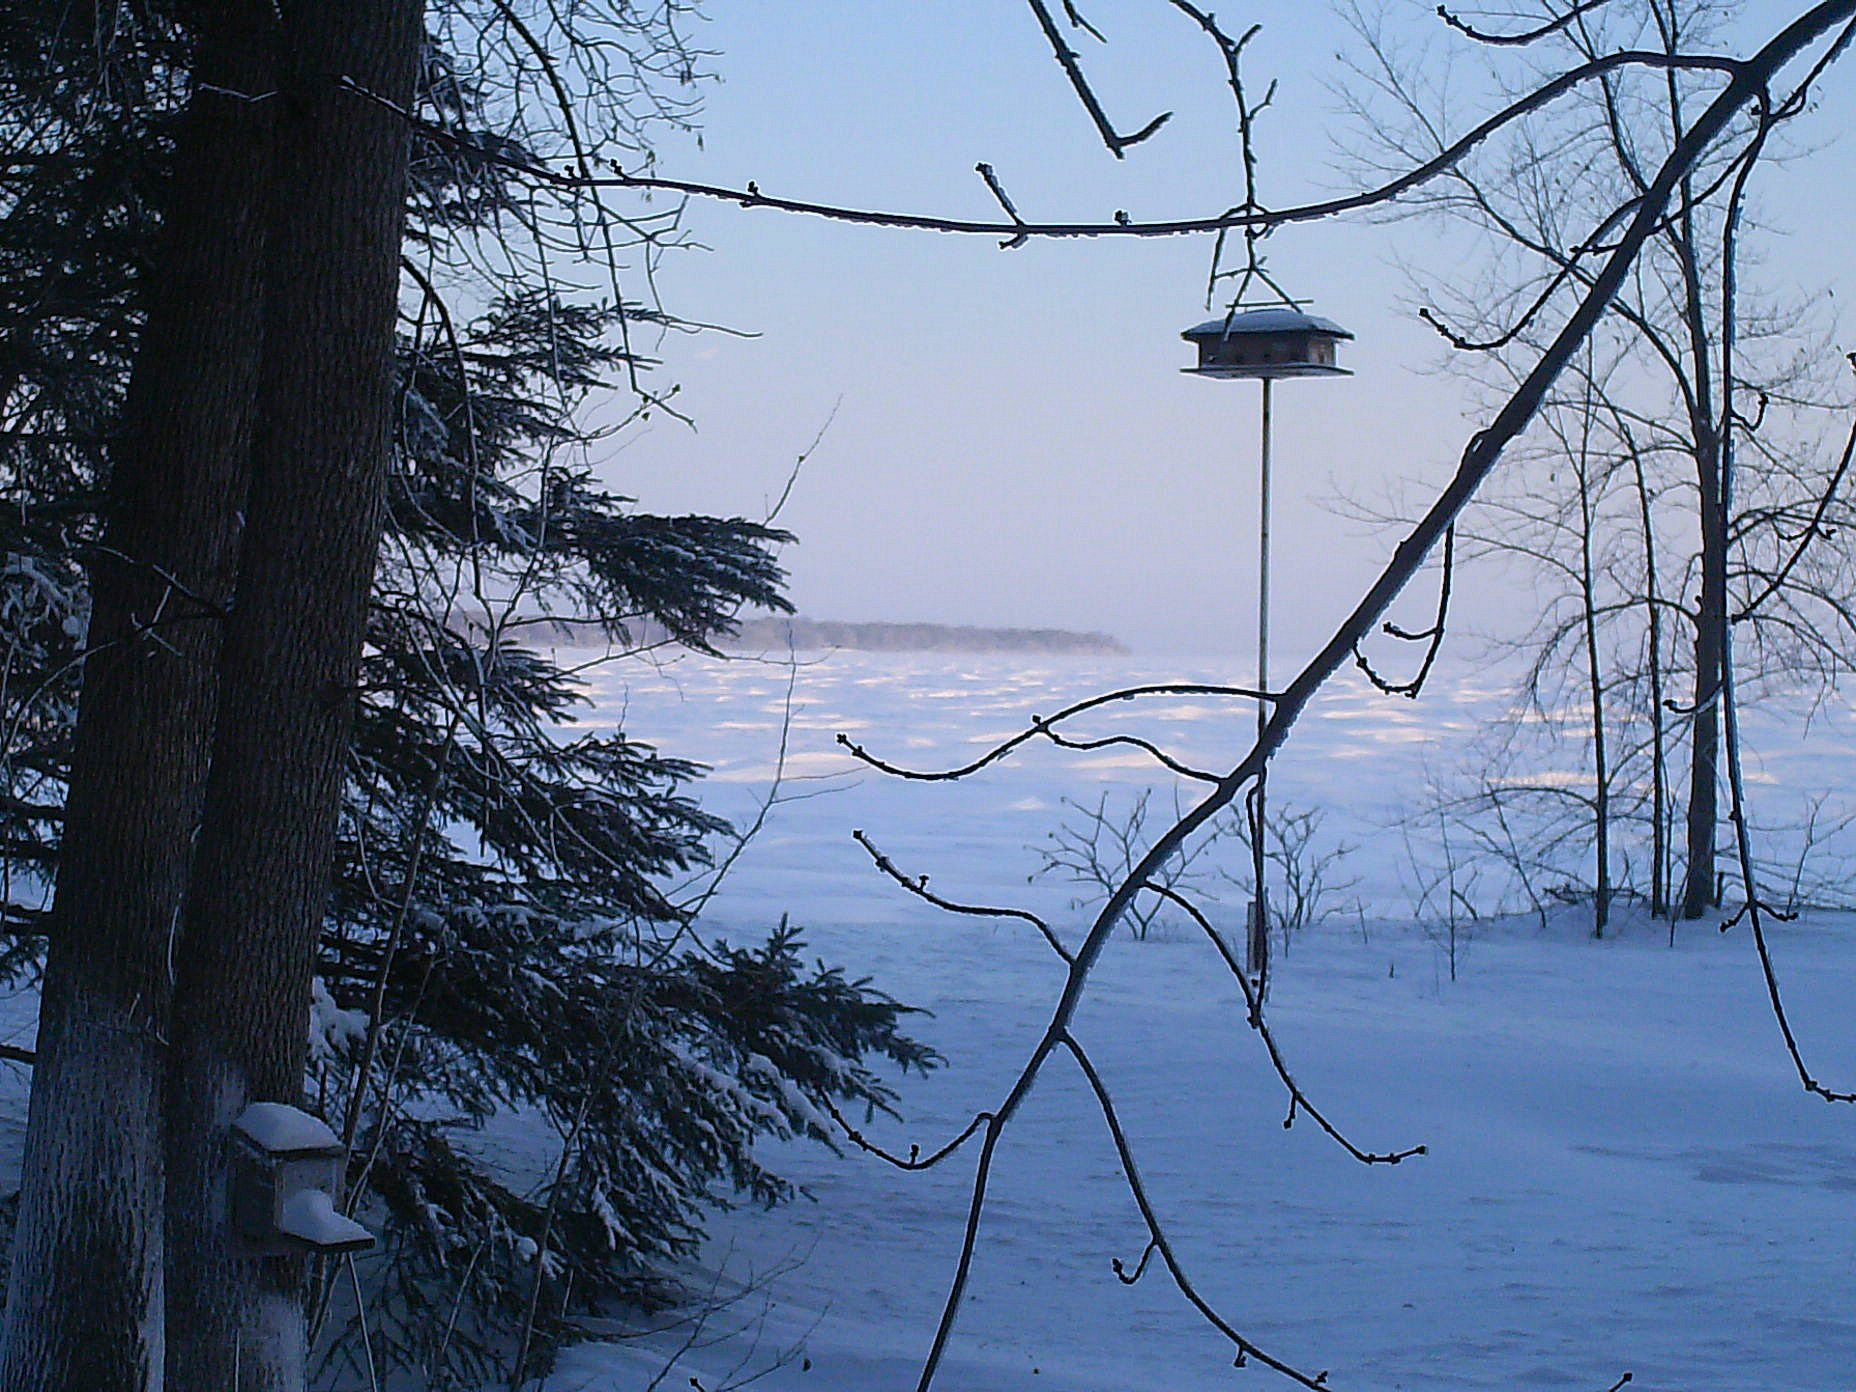 purple martin house, squirrel feeder and lake Dec. 15, 2008